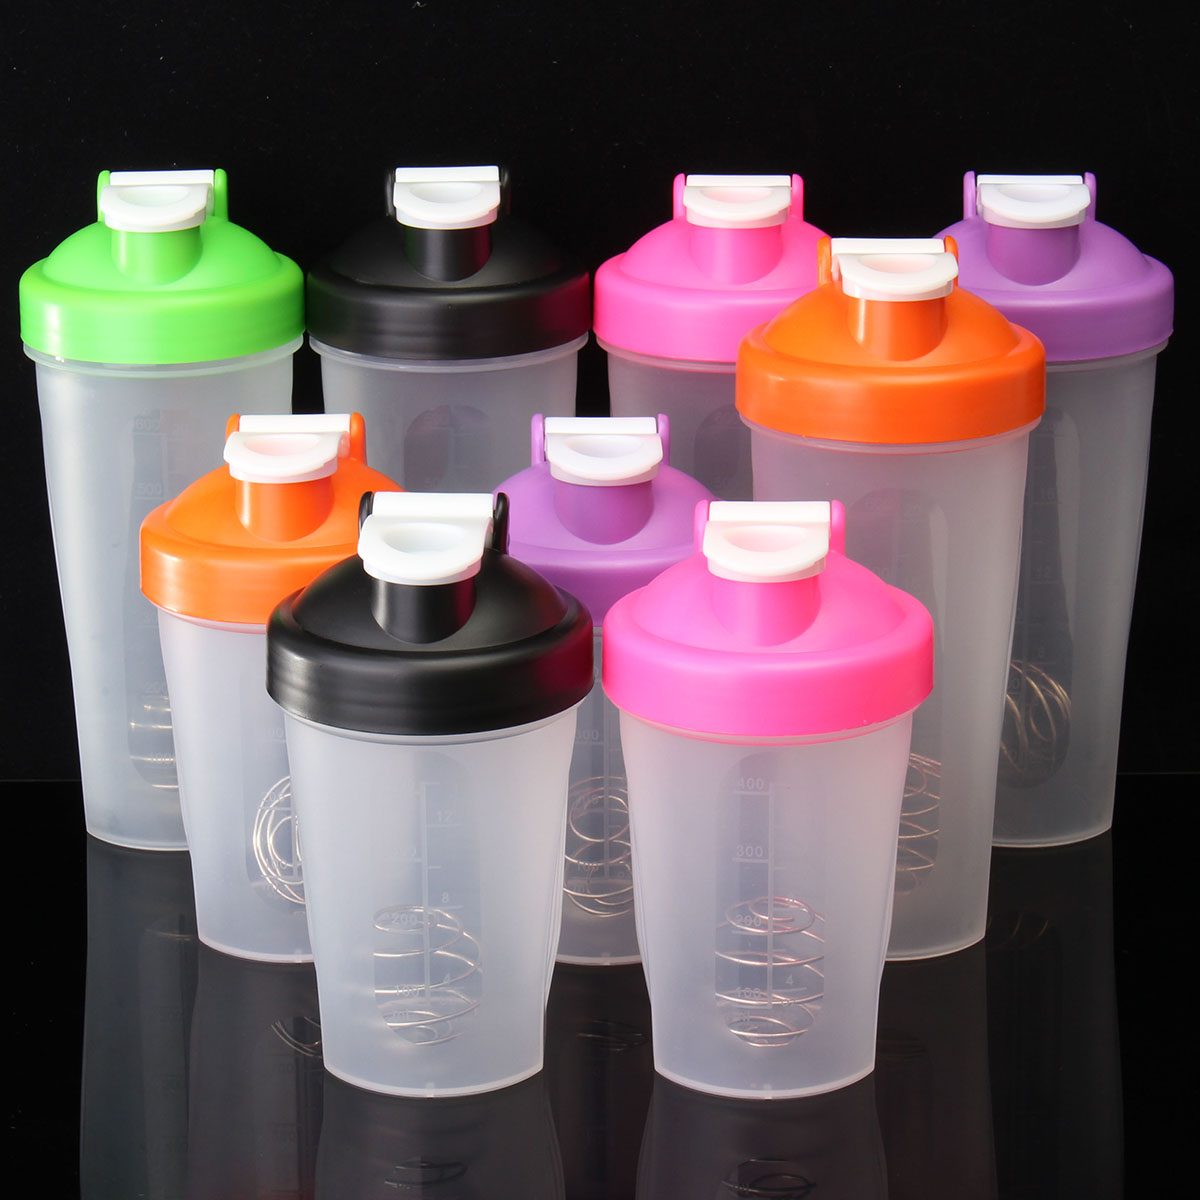 Albumen Powder Protein Milkshake Blender Shaker Sport Bottle Mixing Ball Gym Leak Proof Drinkware